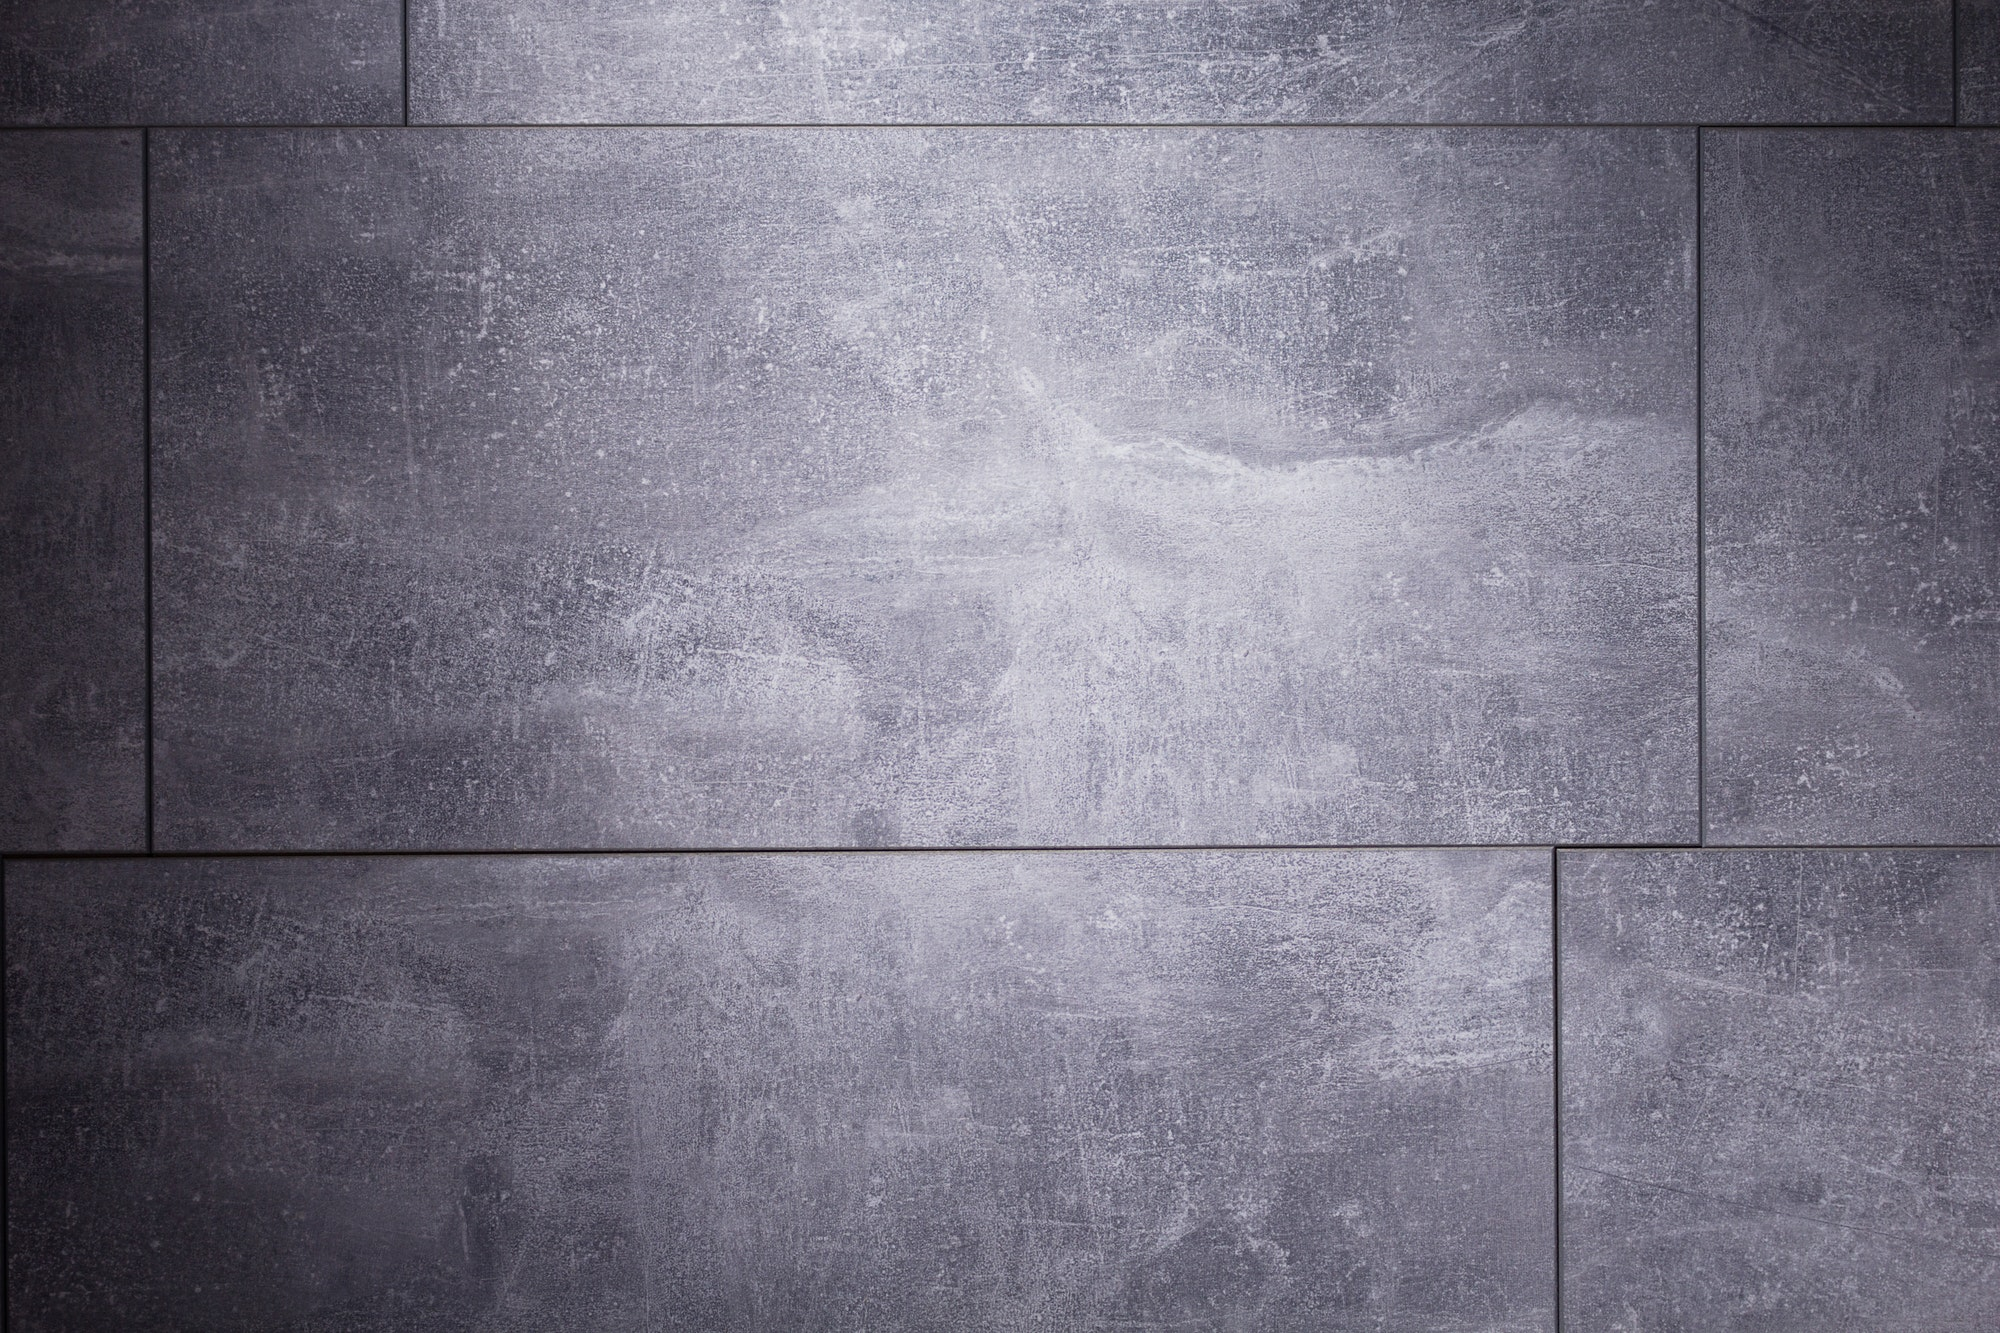 Stone or marble surface background of tile floor or wall texture. Grey floor laminate background